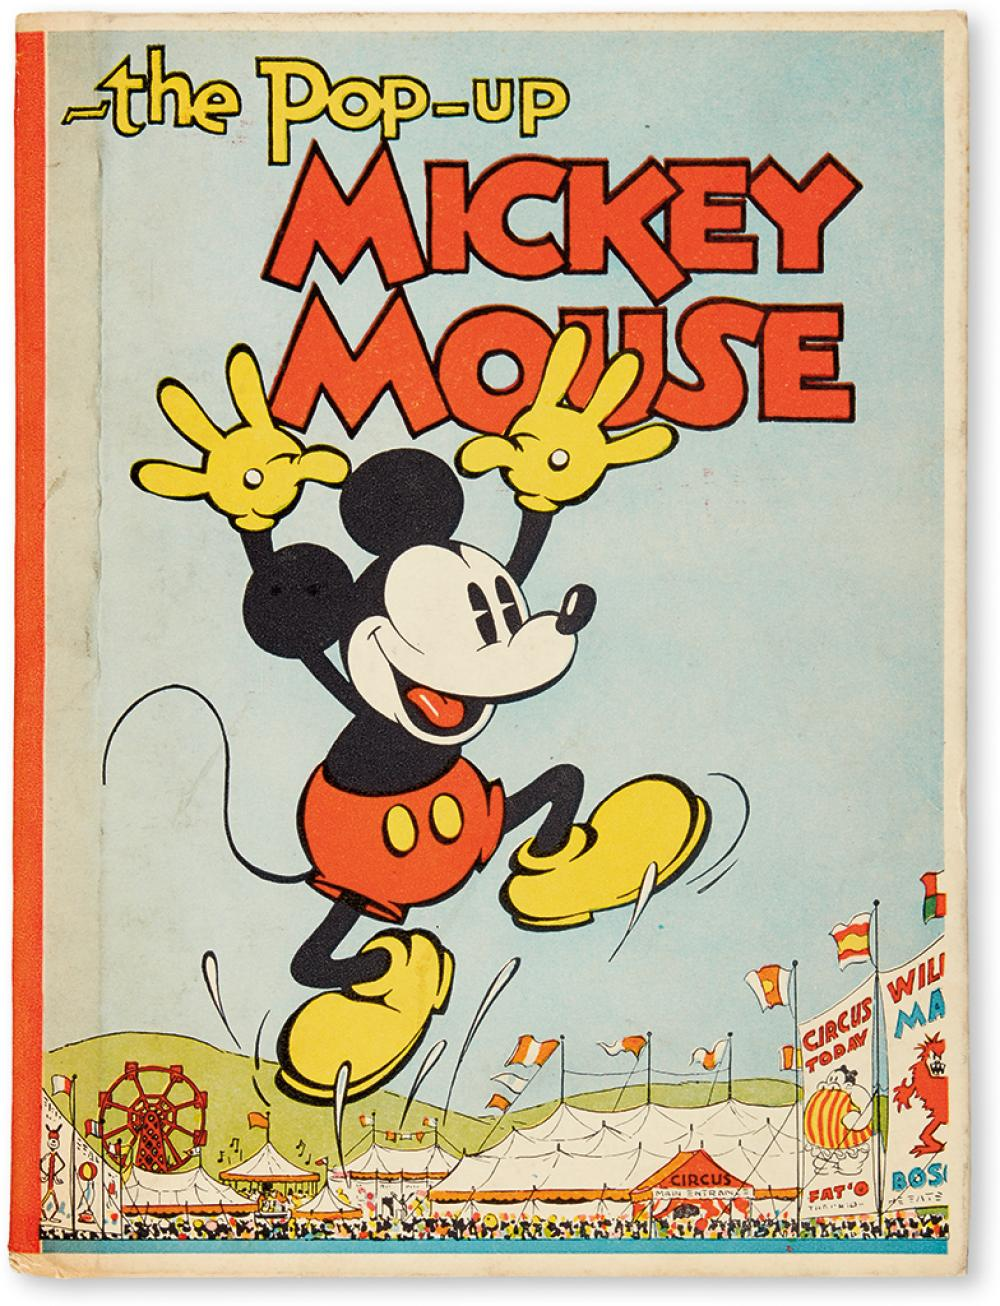 (CHILDREN'S LITERATURE.) WALT DISNEY STUDIOS. The Pop-up Mickey Mouse.